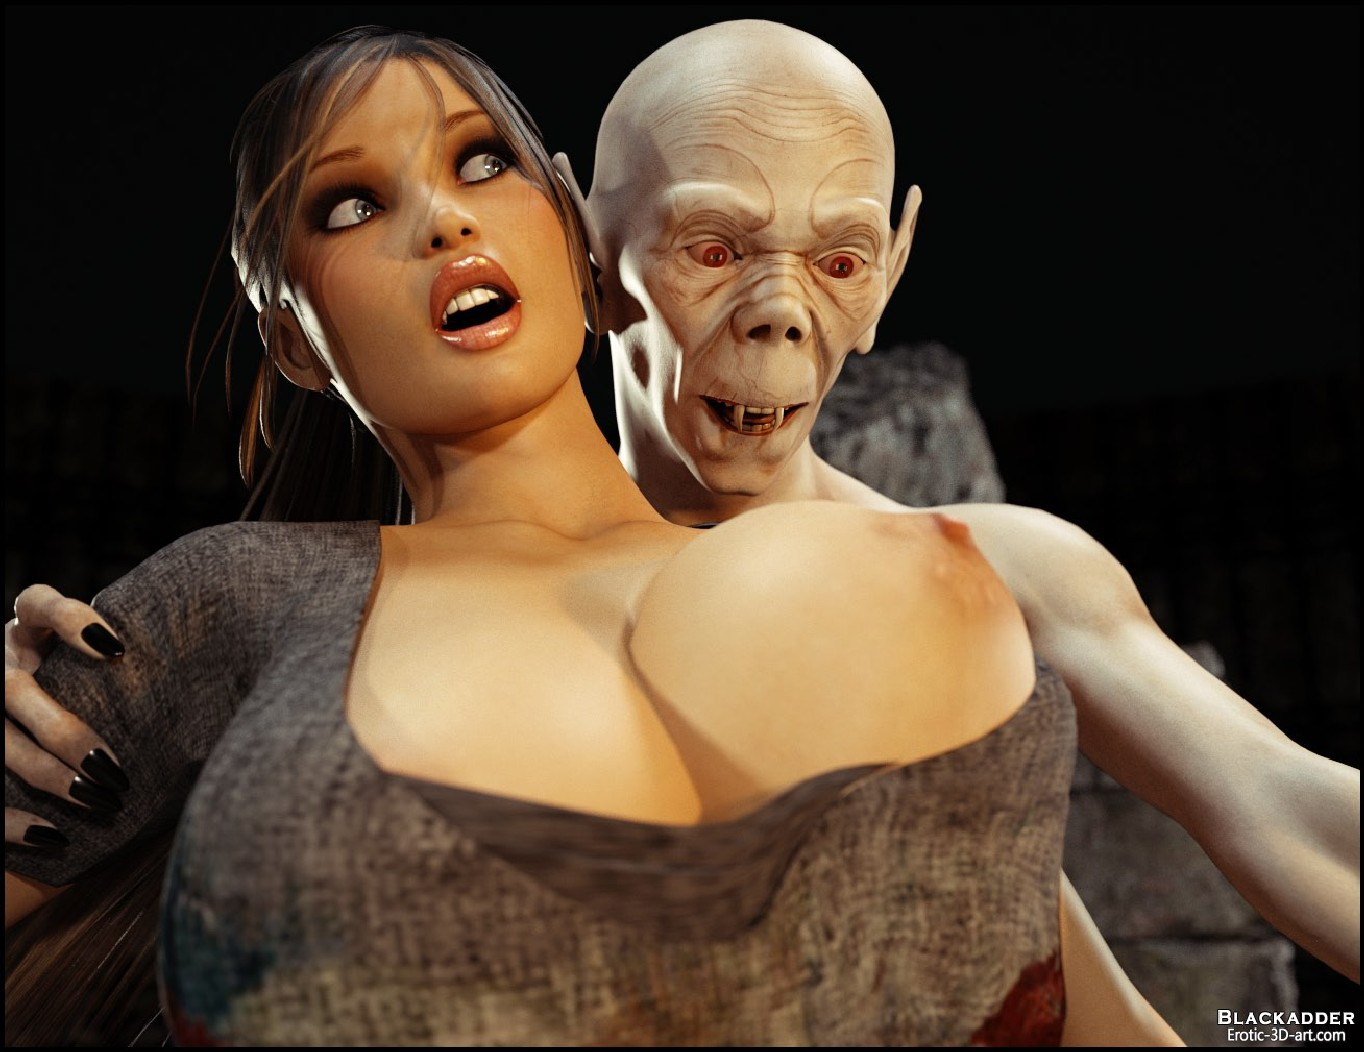 Download film hentai 3d lara croft zombie sex pictures